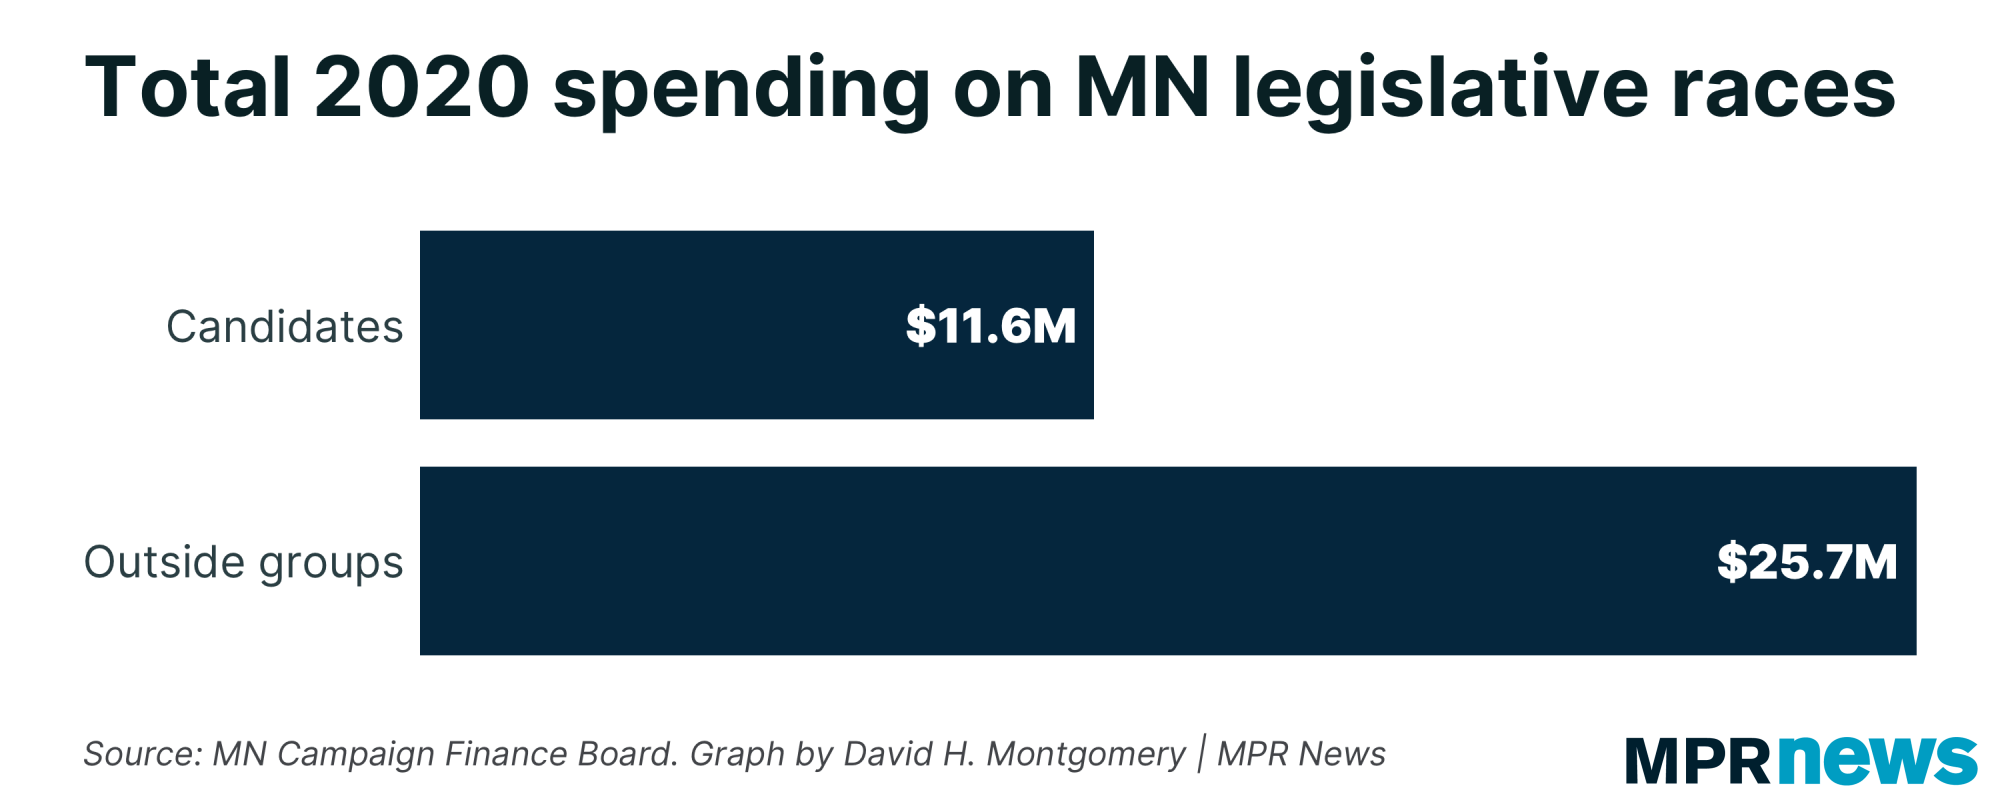 Total 2020 spending on MN legislative races by candidates, outside groups